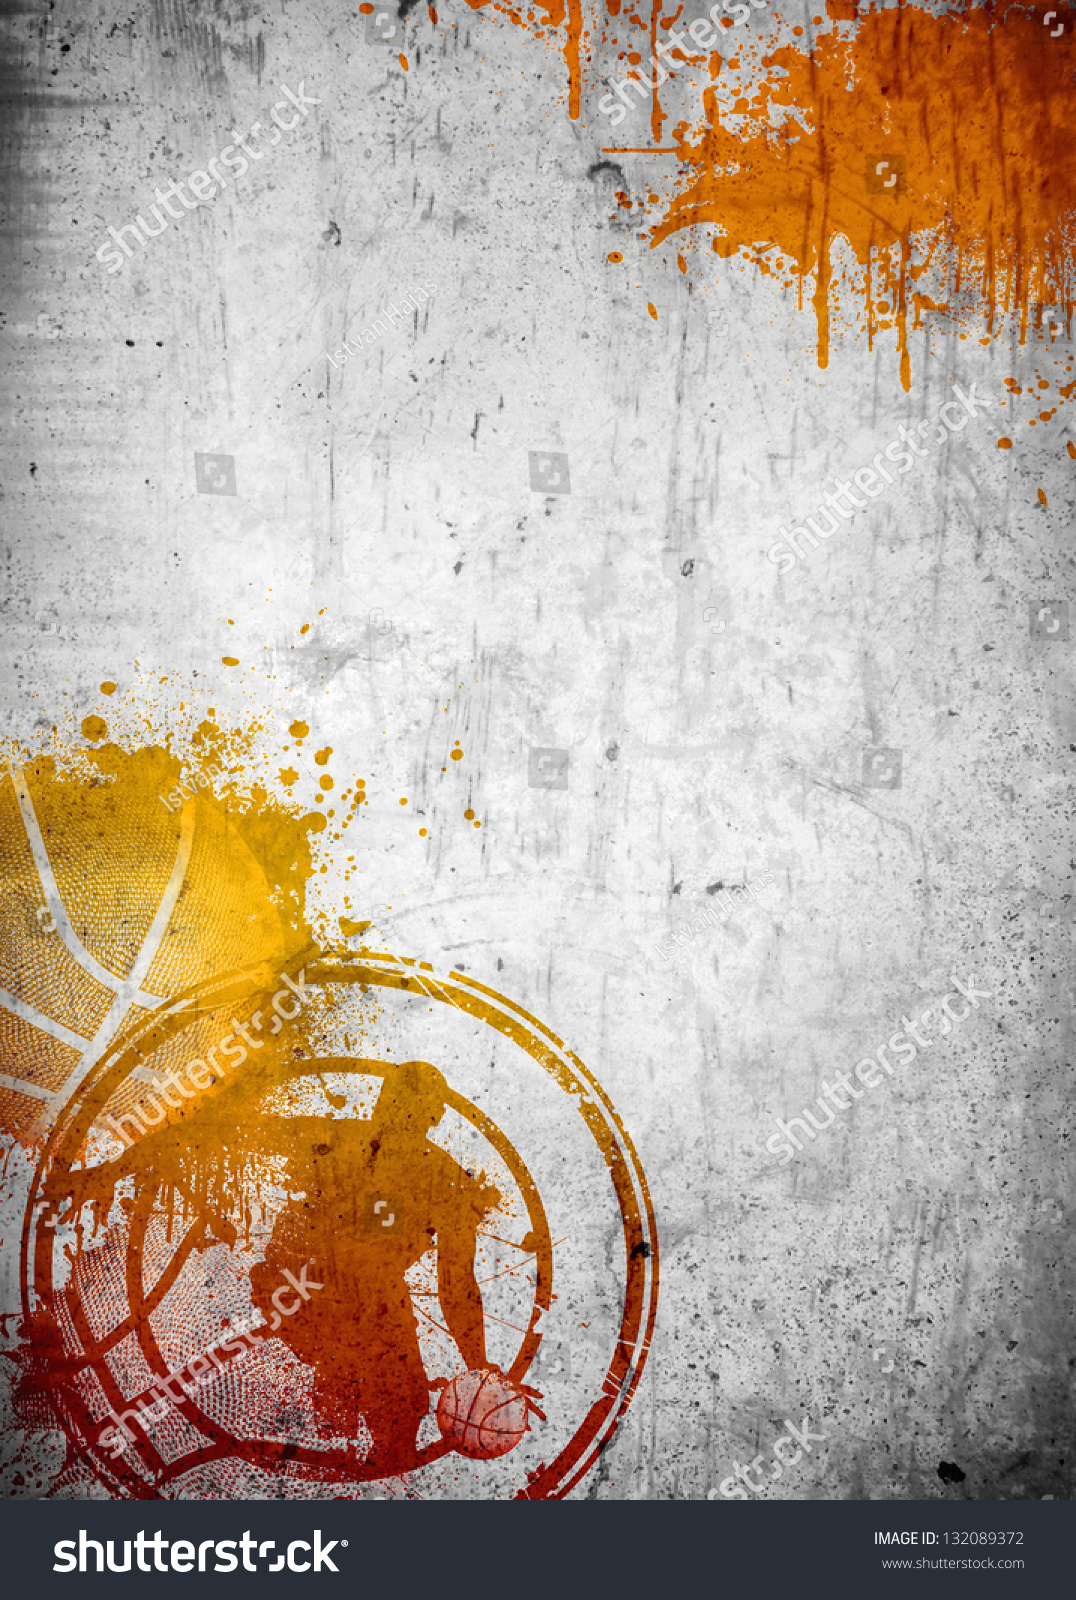 abstract color basketball streetball poster flyer stock abstract color basketball and streetball poster or flyer background space